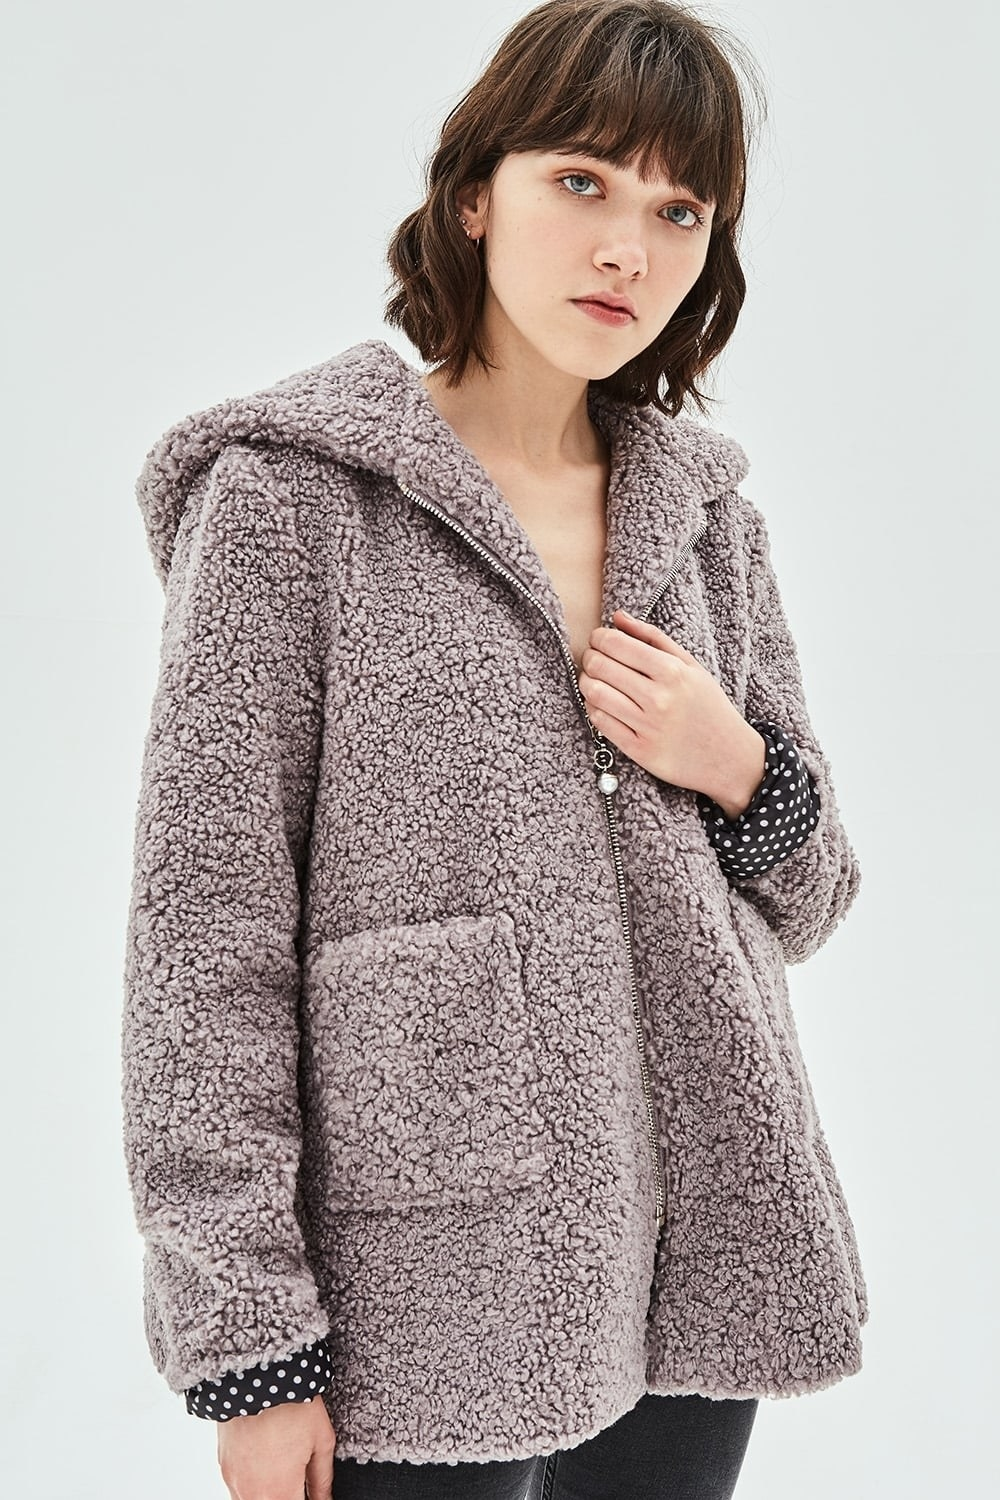 c4466d11d 29 Of The Best Places To Buy Inexpensive Coats Online